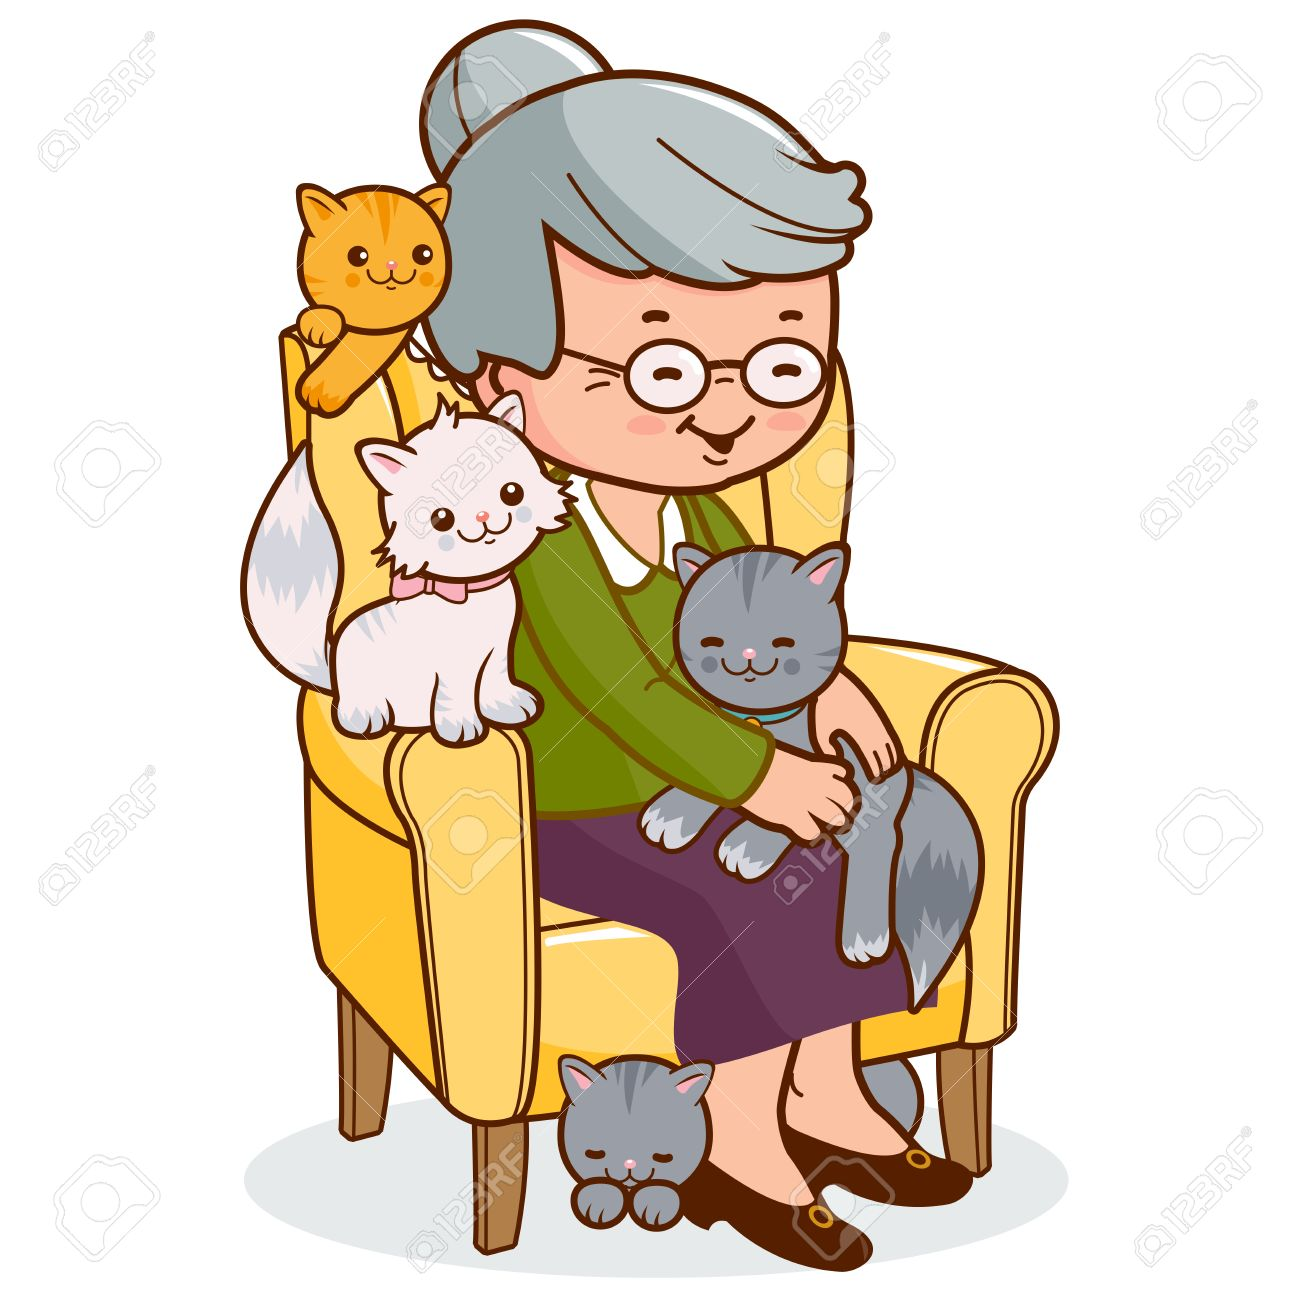 Old woman sitting in armchair with cats. - 45529513